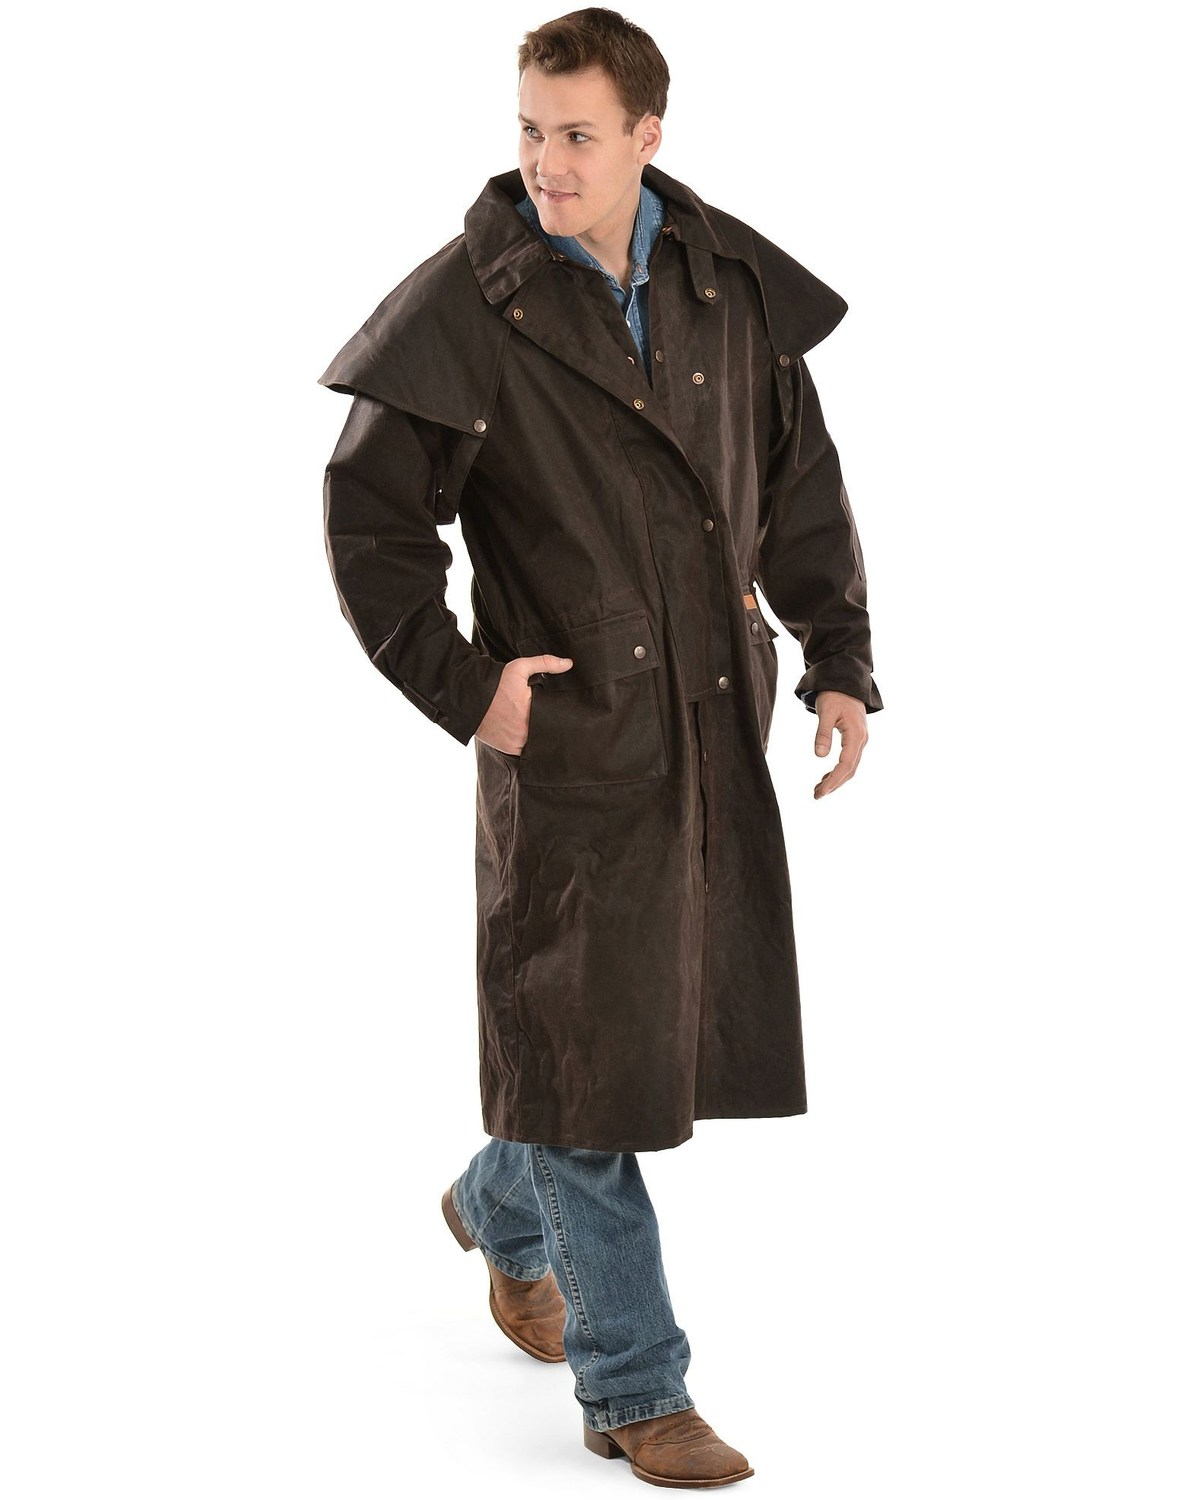 Outback Menu0027s Low Ride Duster Coat, Brown, hi-res